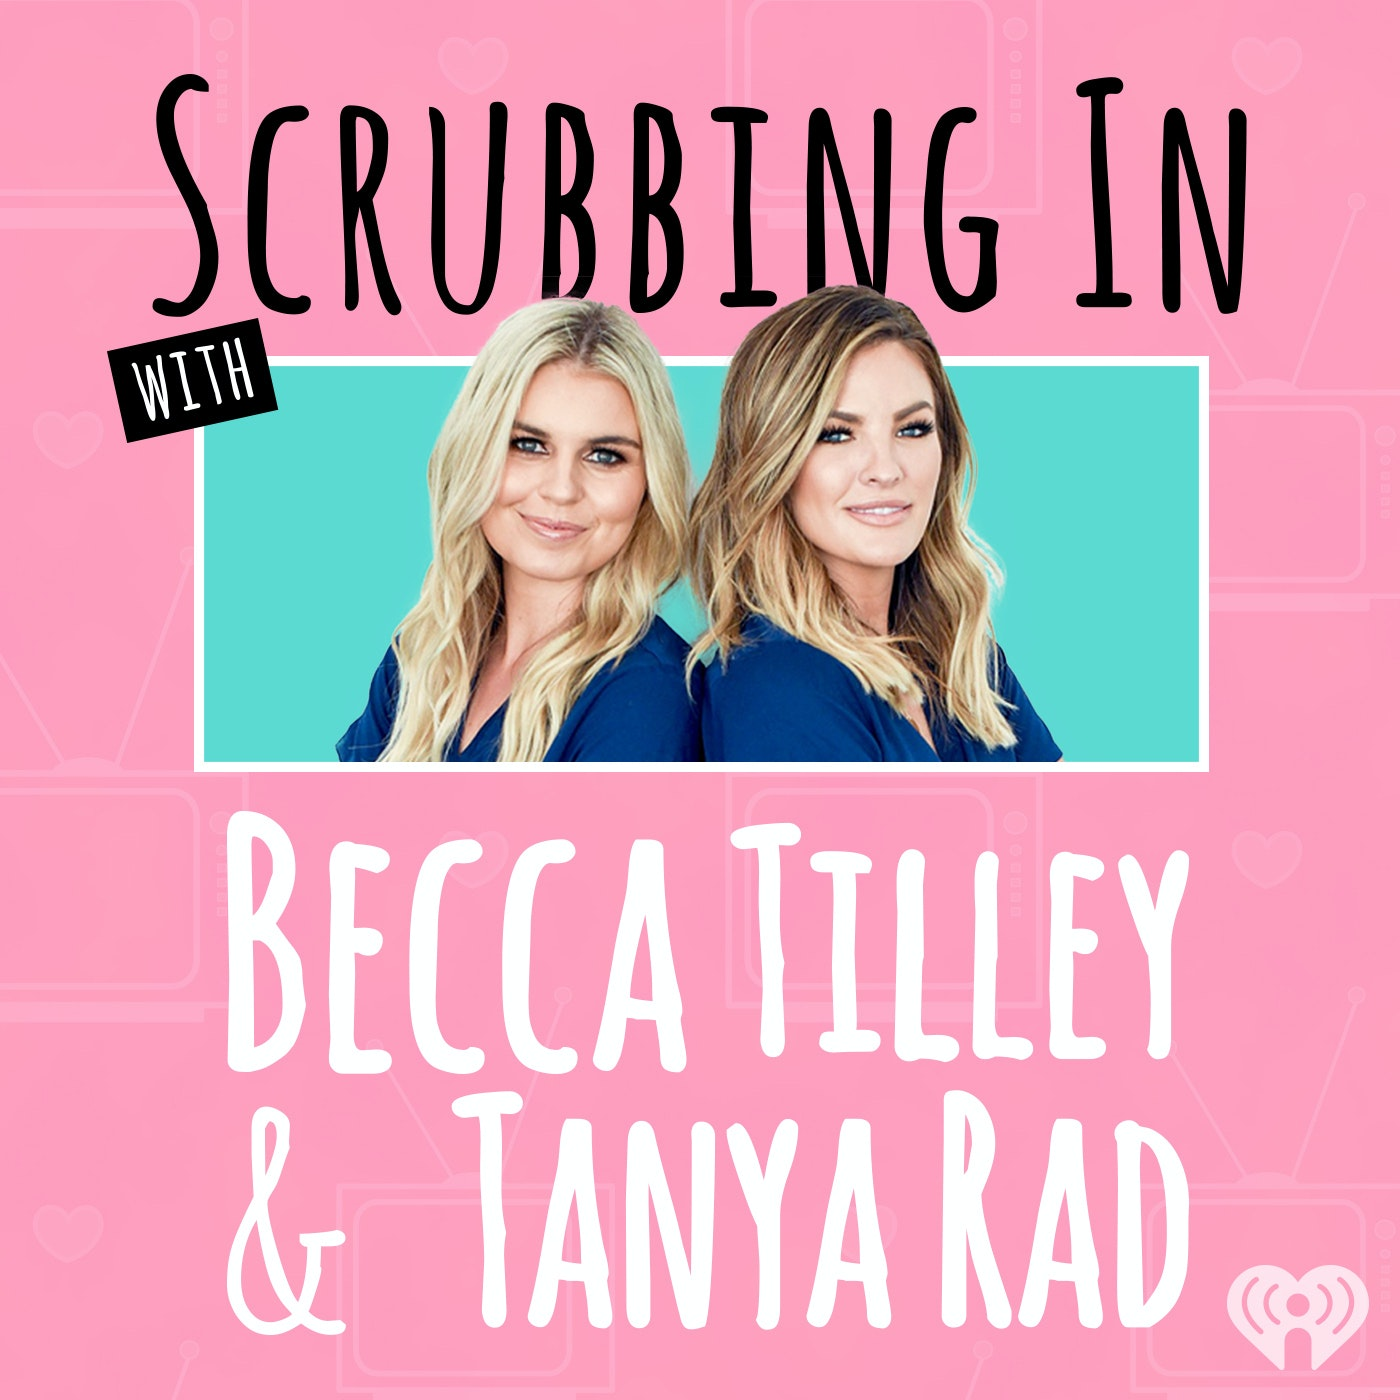 Scrubbing in with Becca Tilley